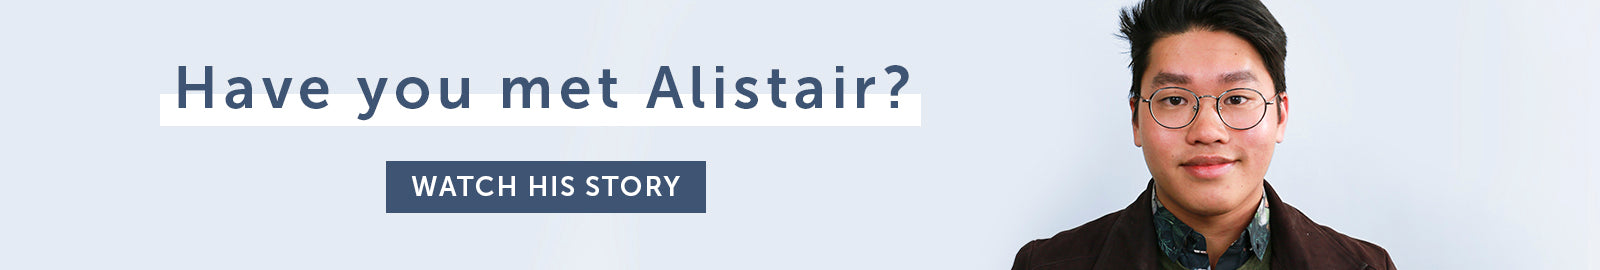 Have you met Alistair? Watch his story.